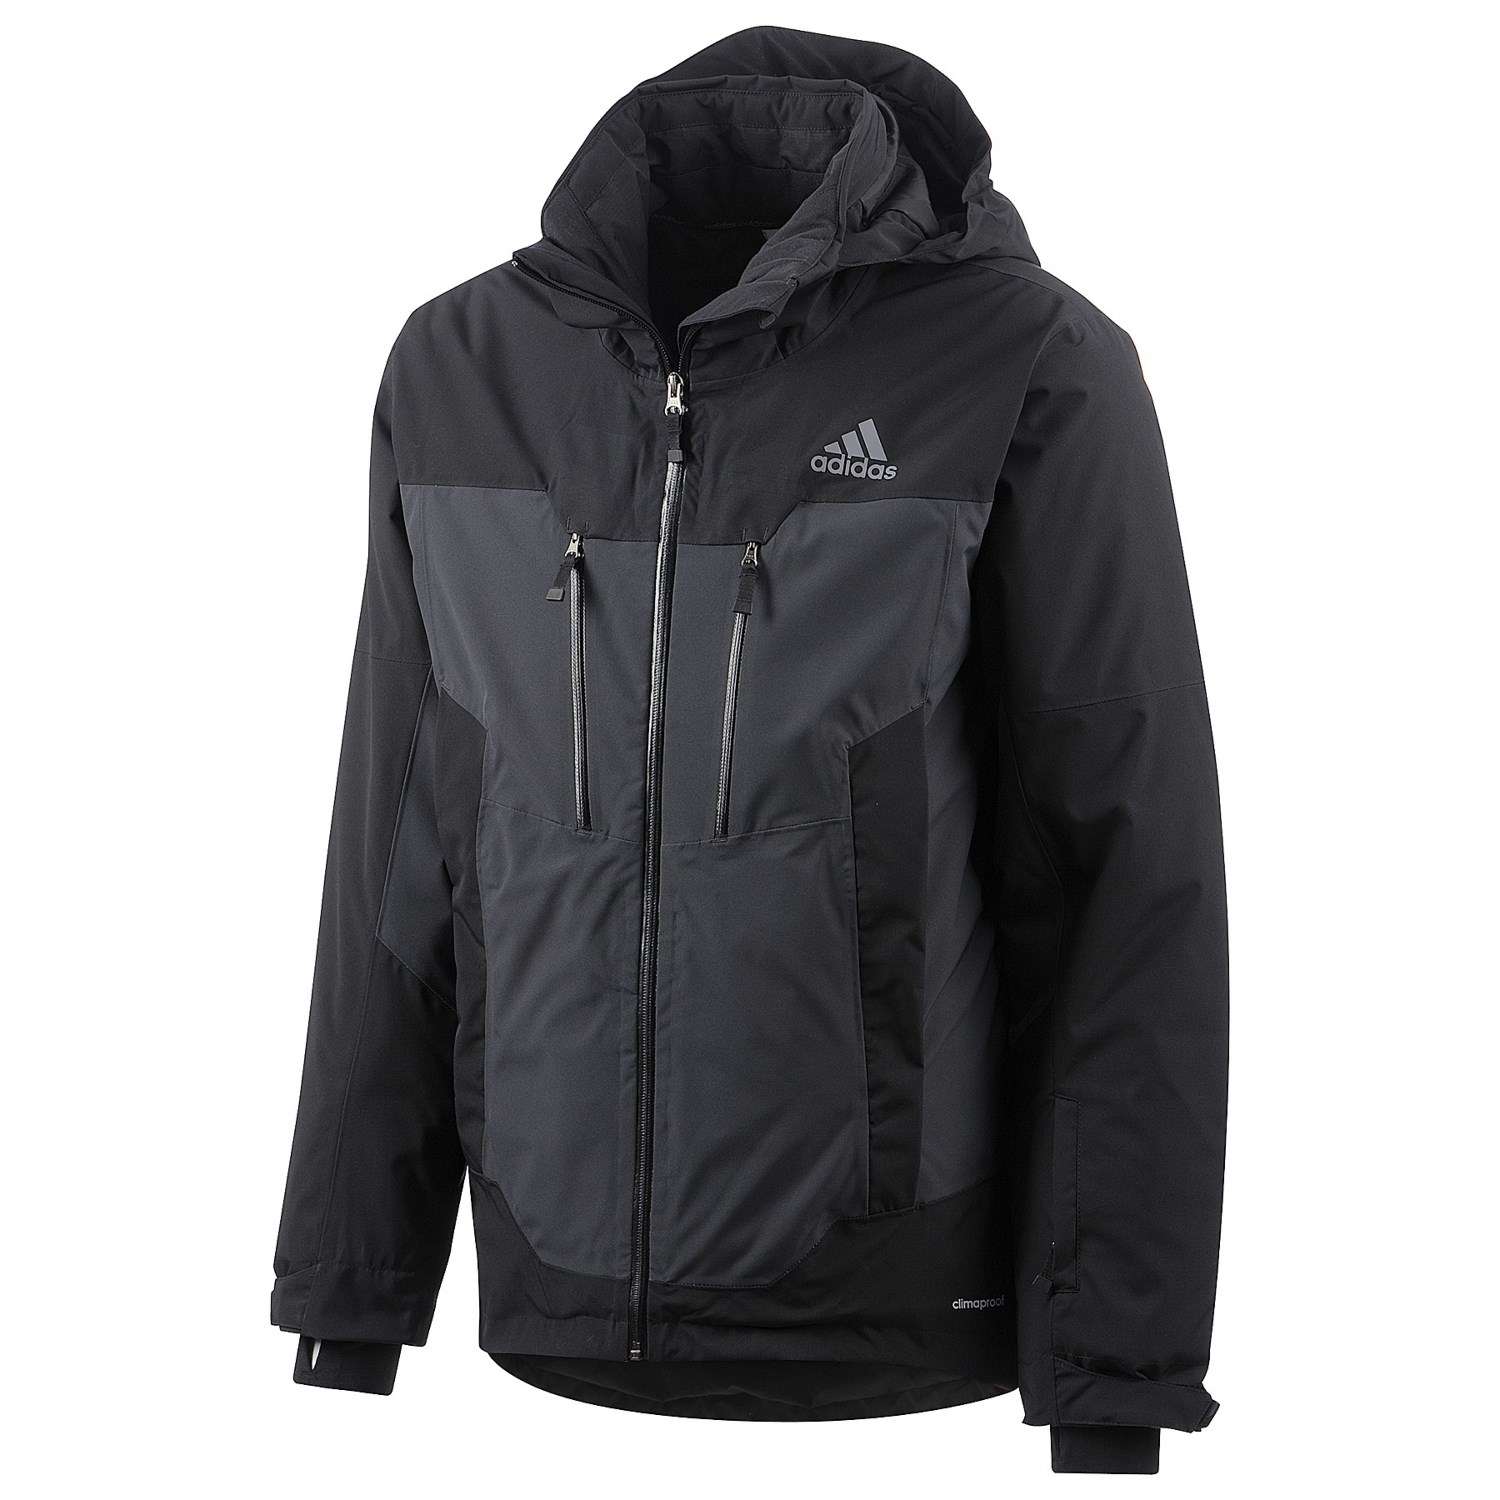 adidas winter stretch cps jacket insulated for men. Black Bedroom Furniture Sets. Home Design Ideas